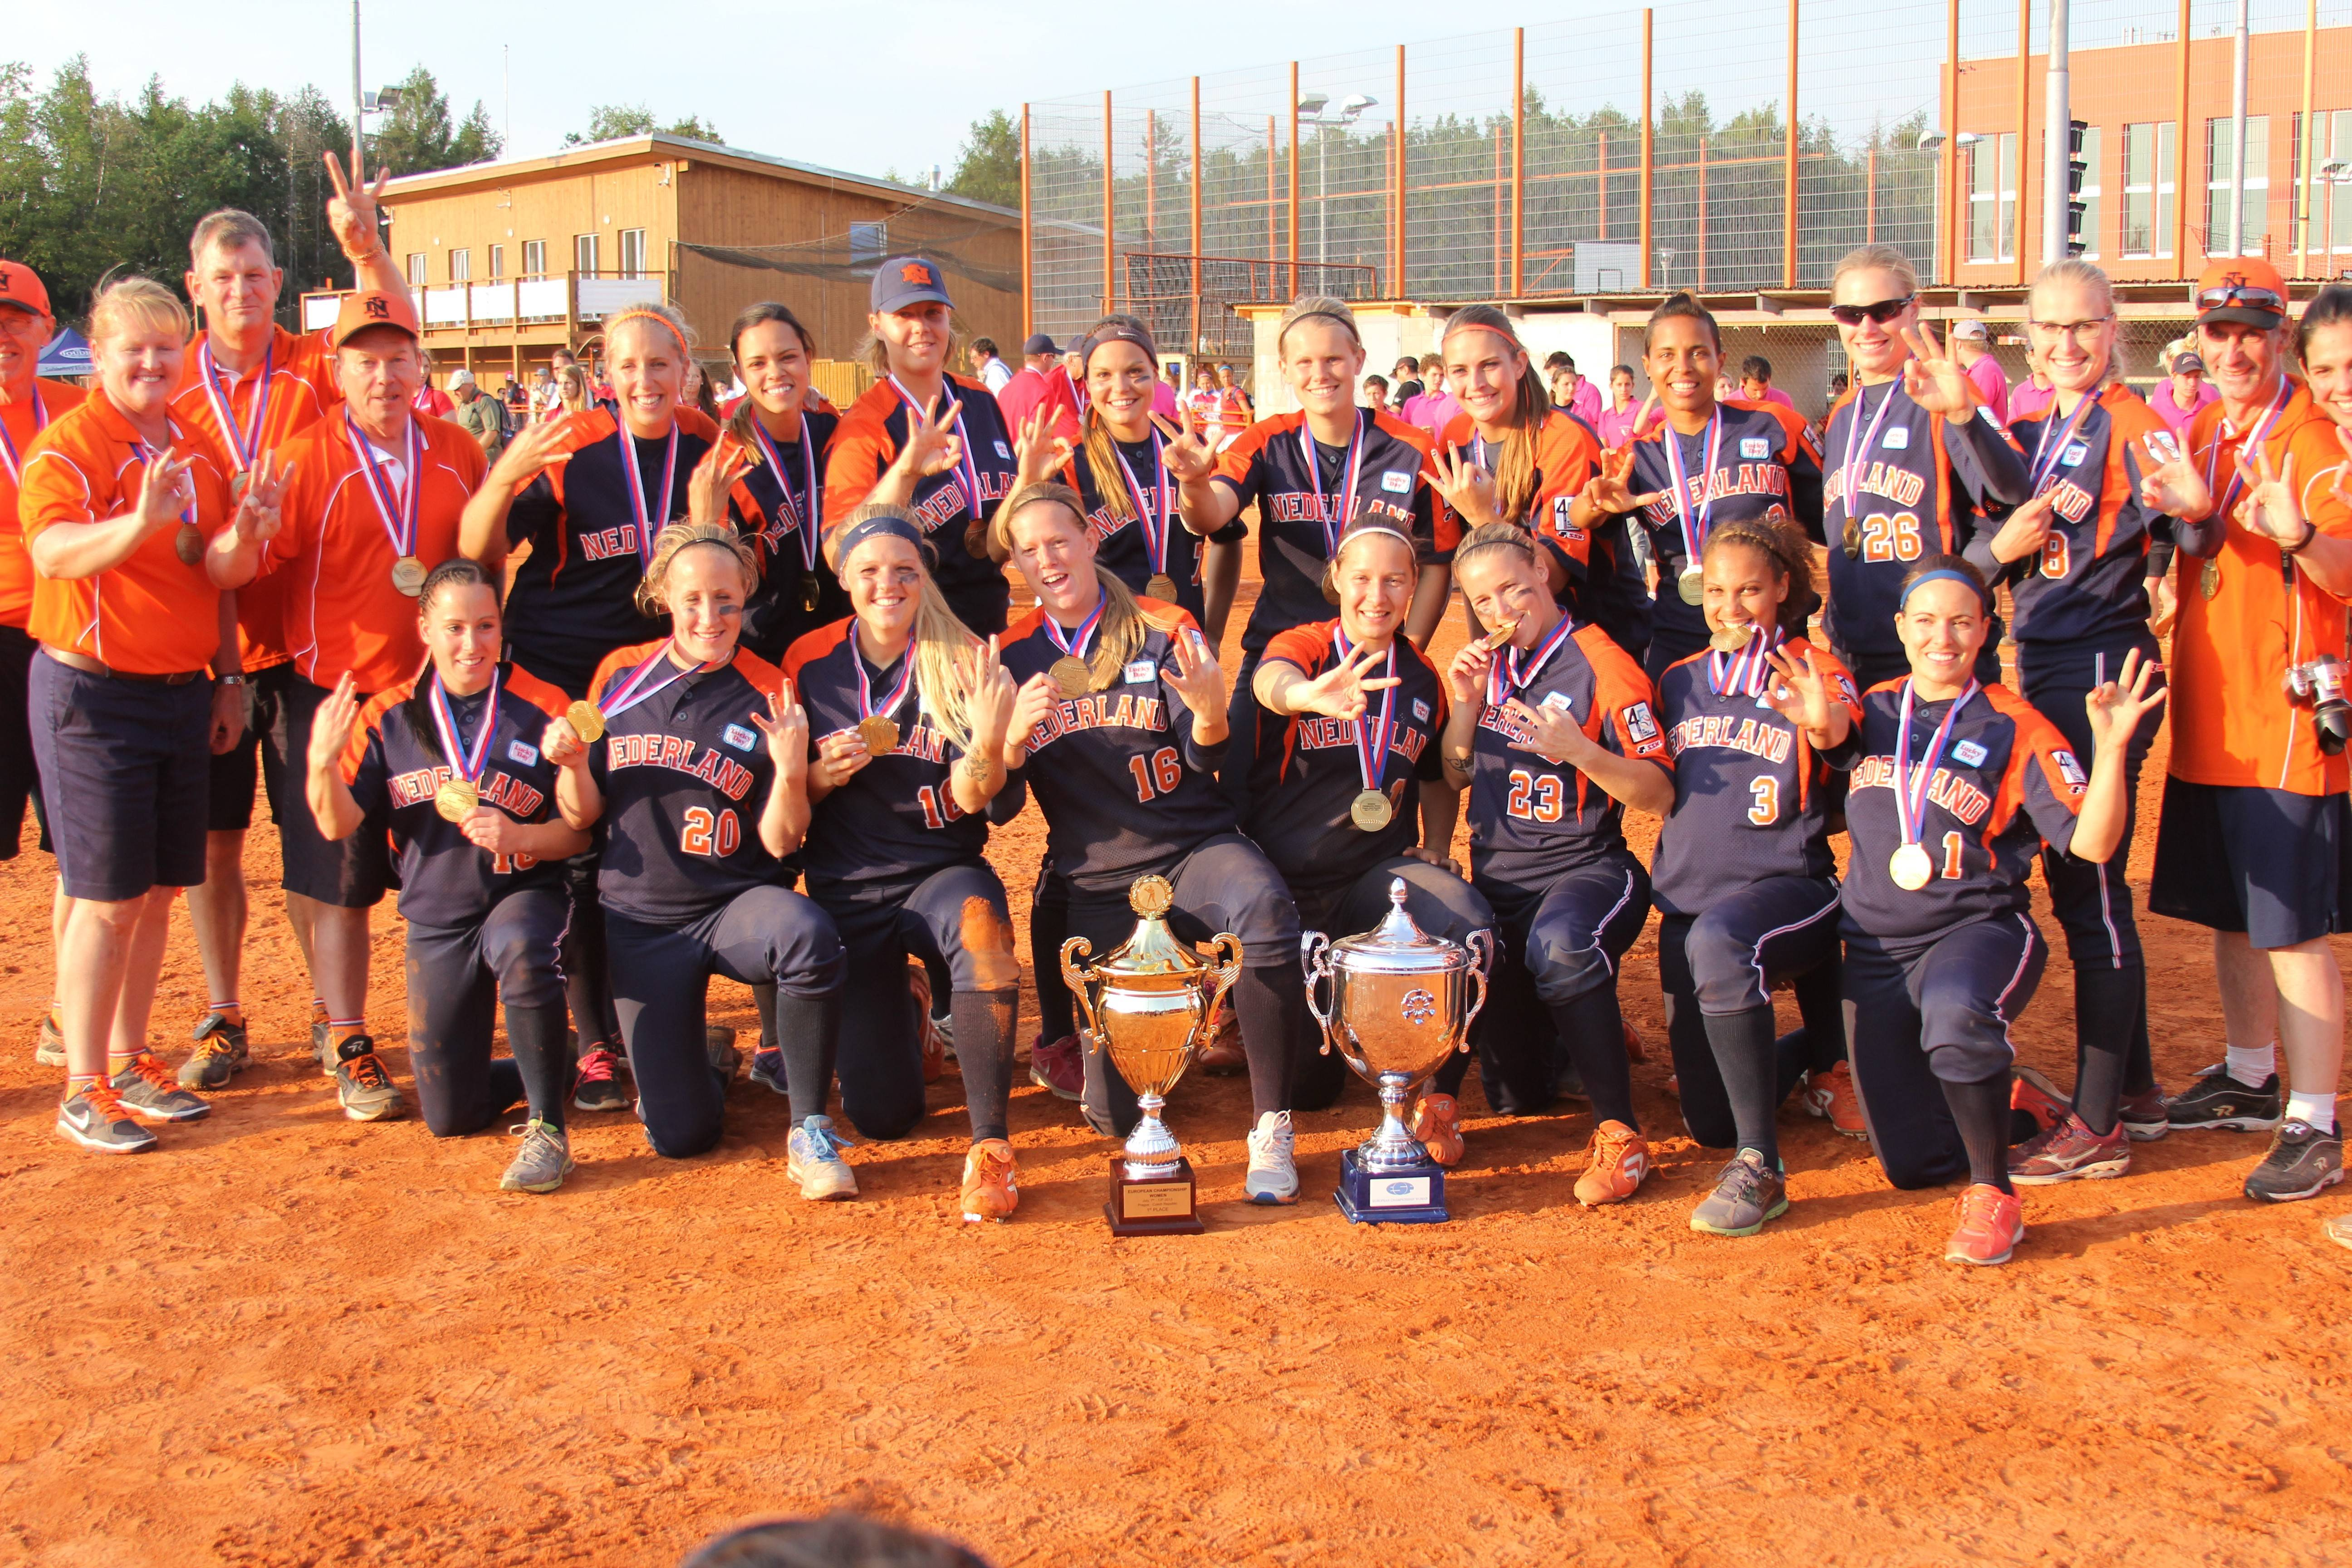 The Netherlands national softball team is coming to Elgin this week to take part in the John Radtke Memorial Women's Fastpitch Softball Tournament at the Elgin Sports Complex. The team is prepping for the world championships next month.